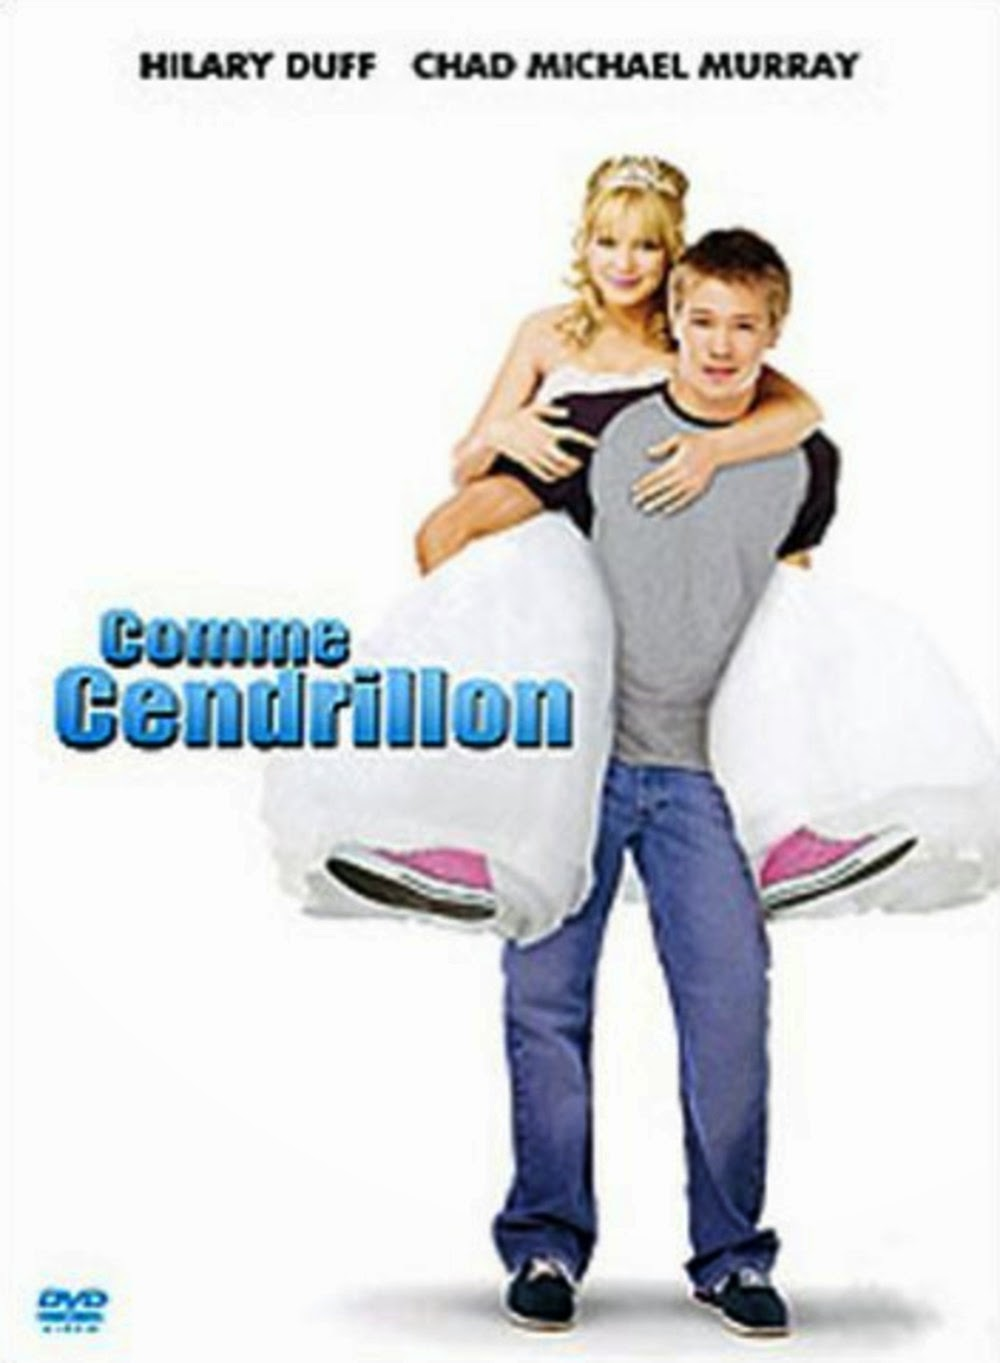 Affiche du teen movie Comme Cendrillon (2003)